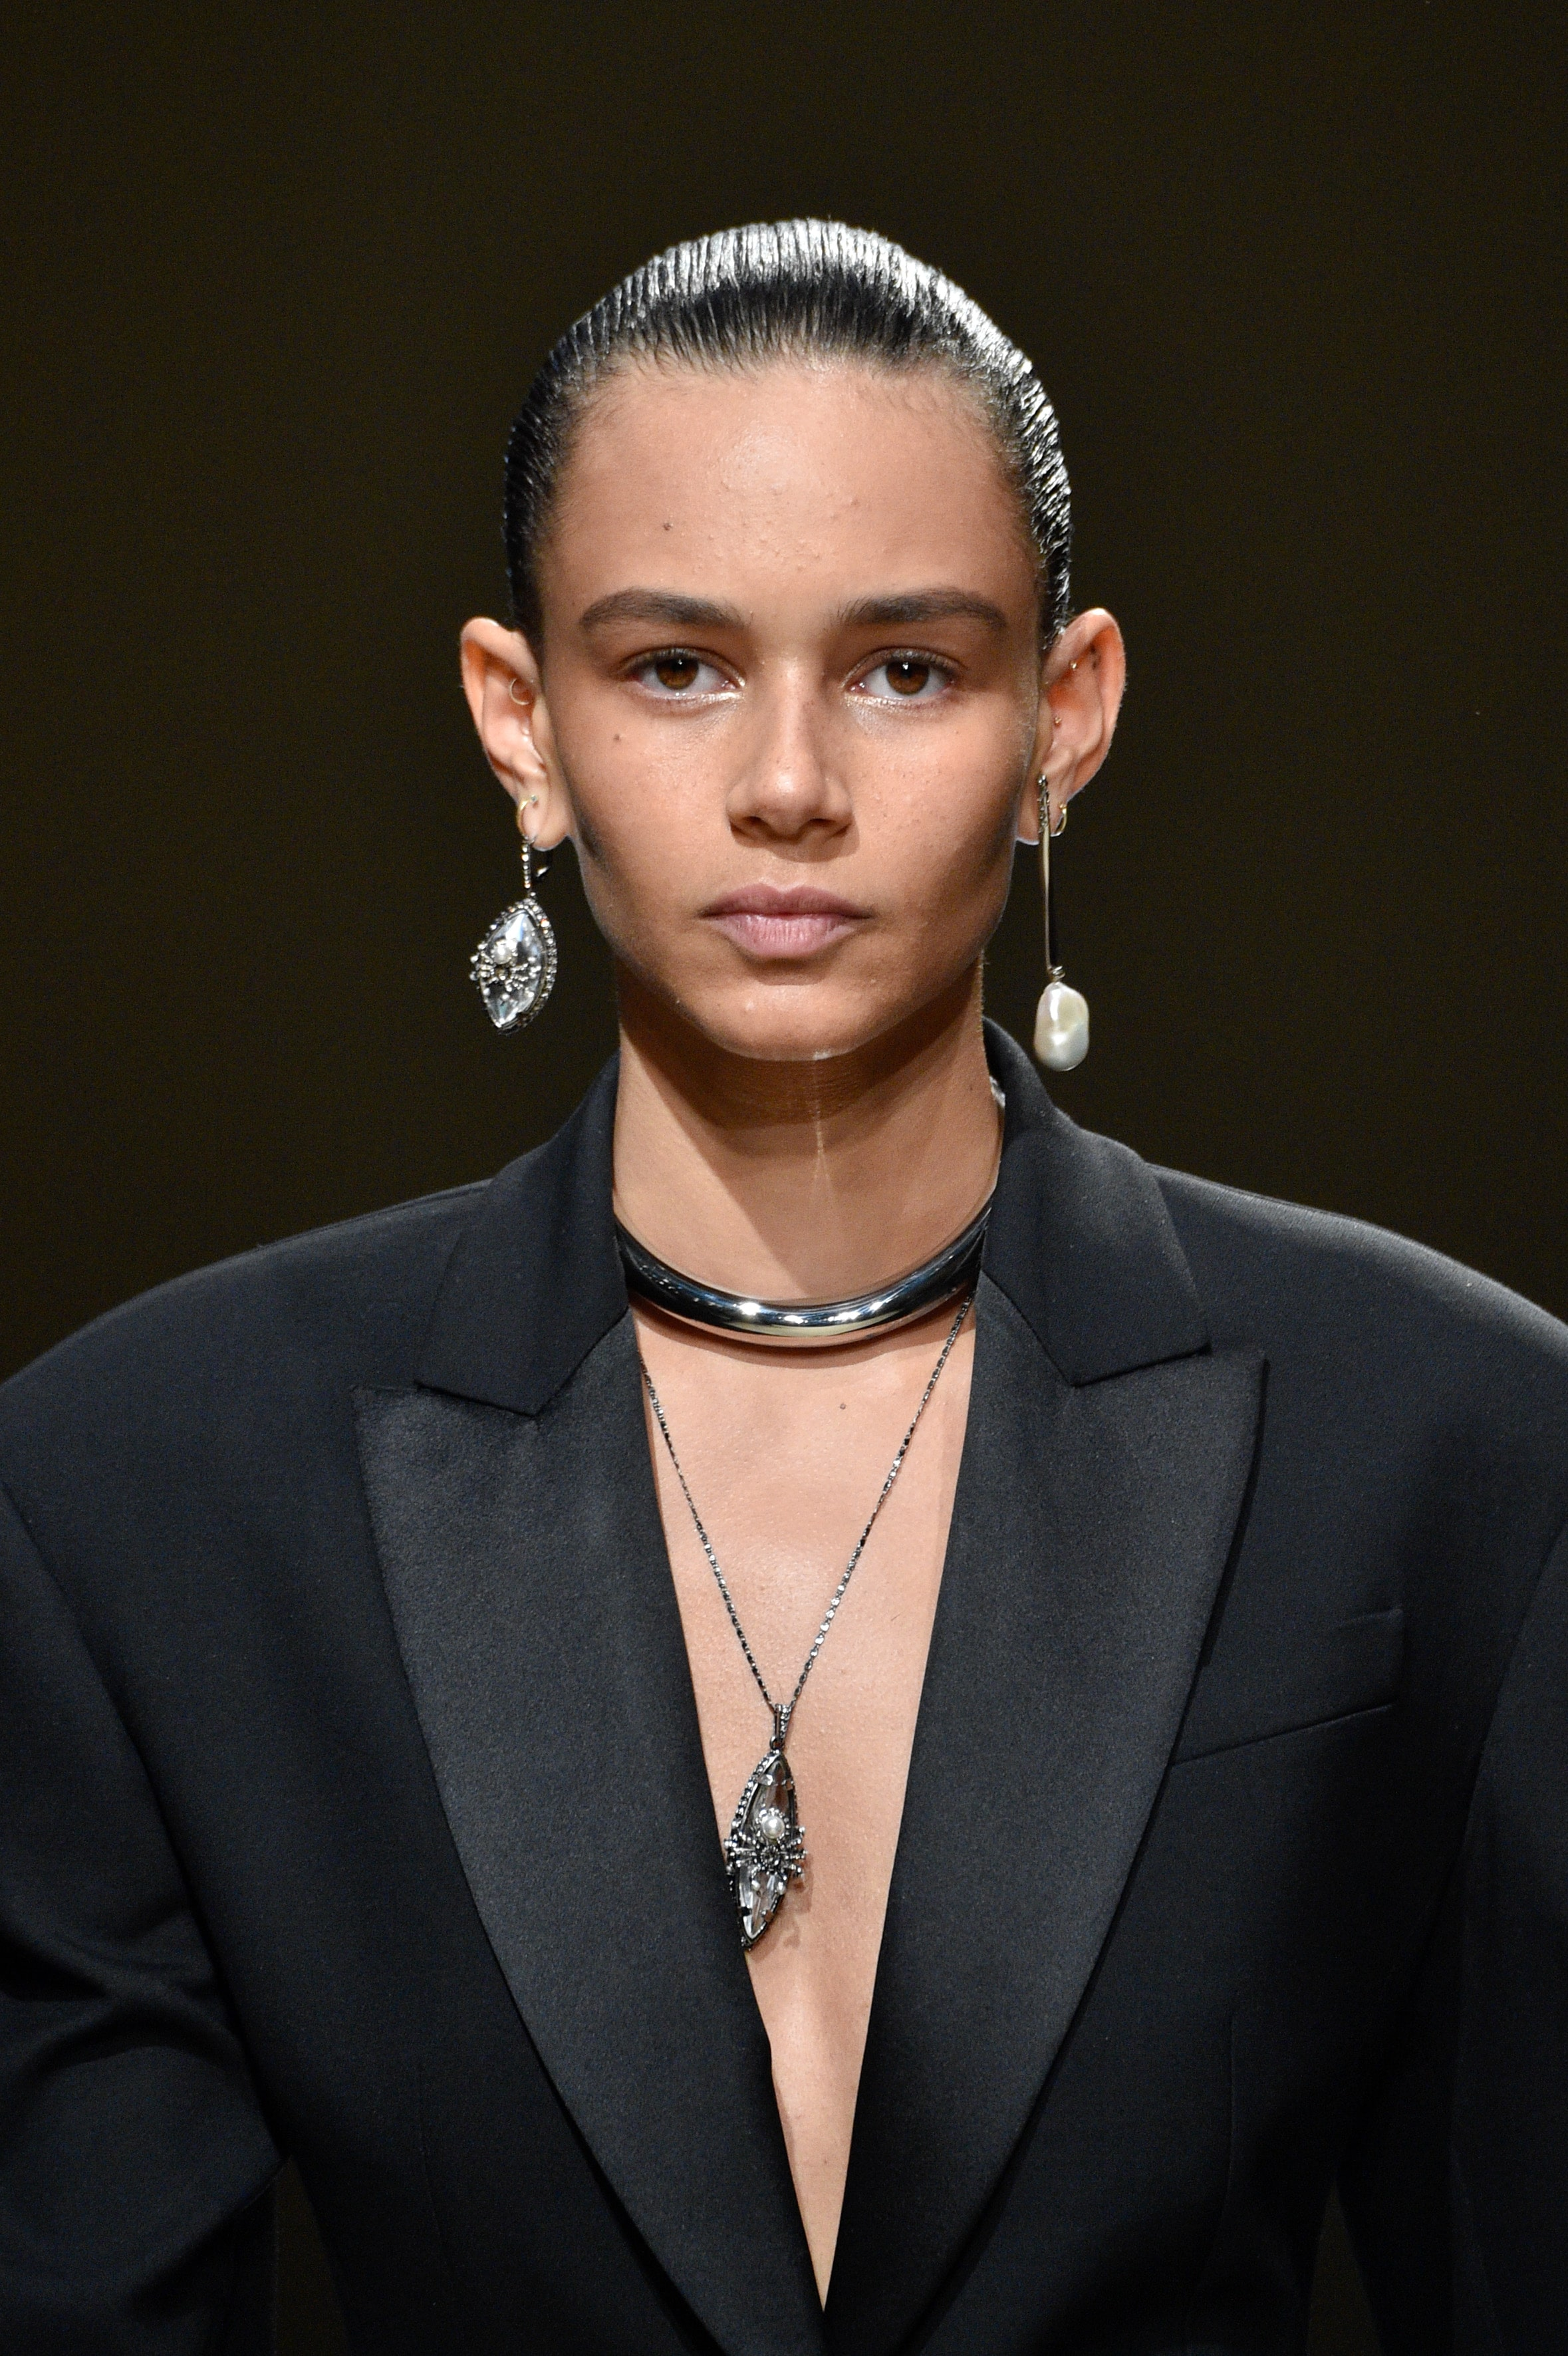 Binx Walton pairing metal and pearl at Alexander McQueen. Image: Courtesy Peter White/Getty Images